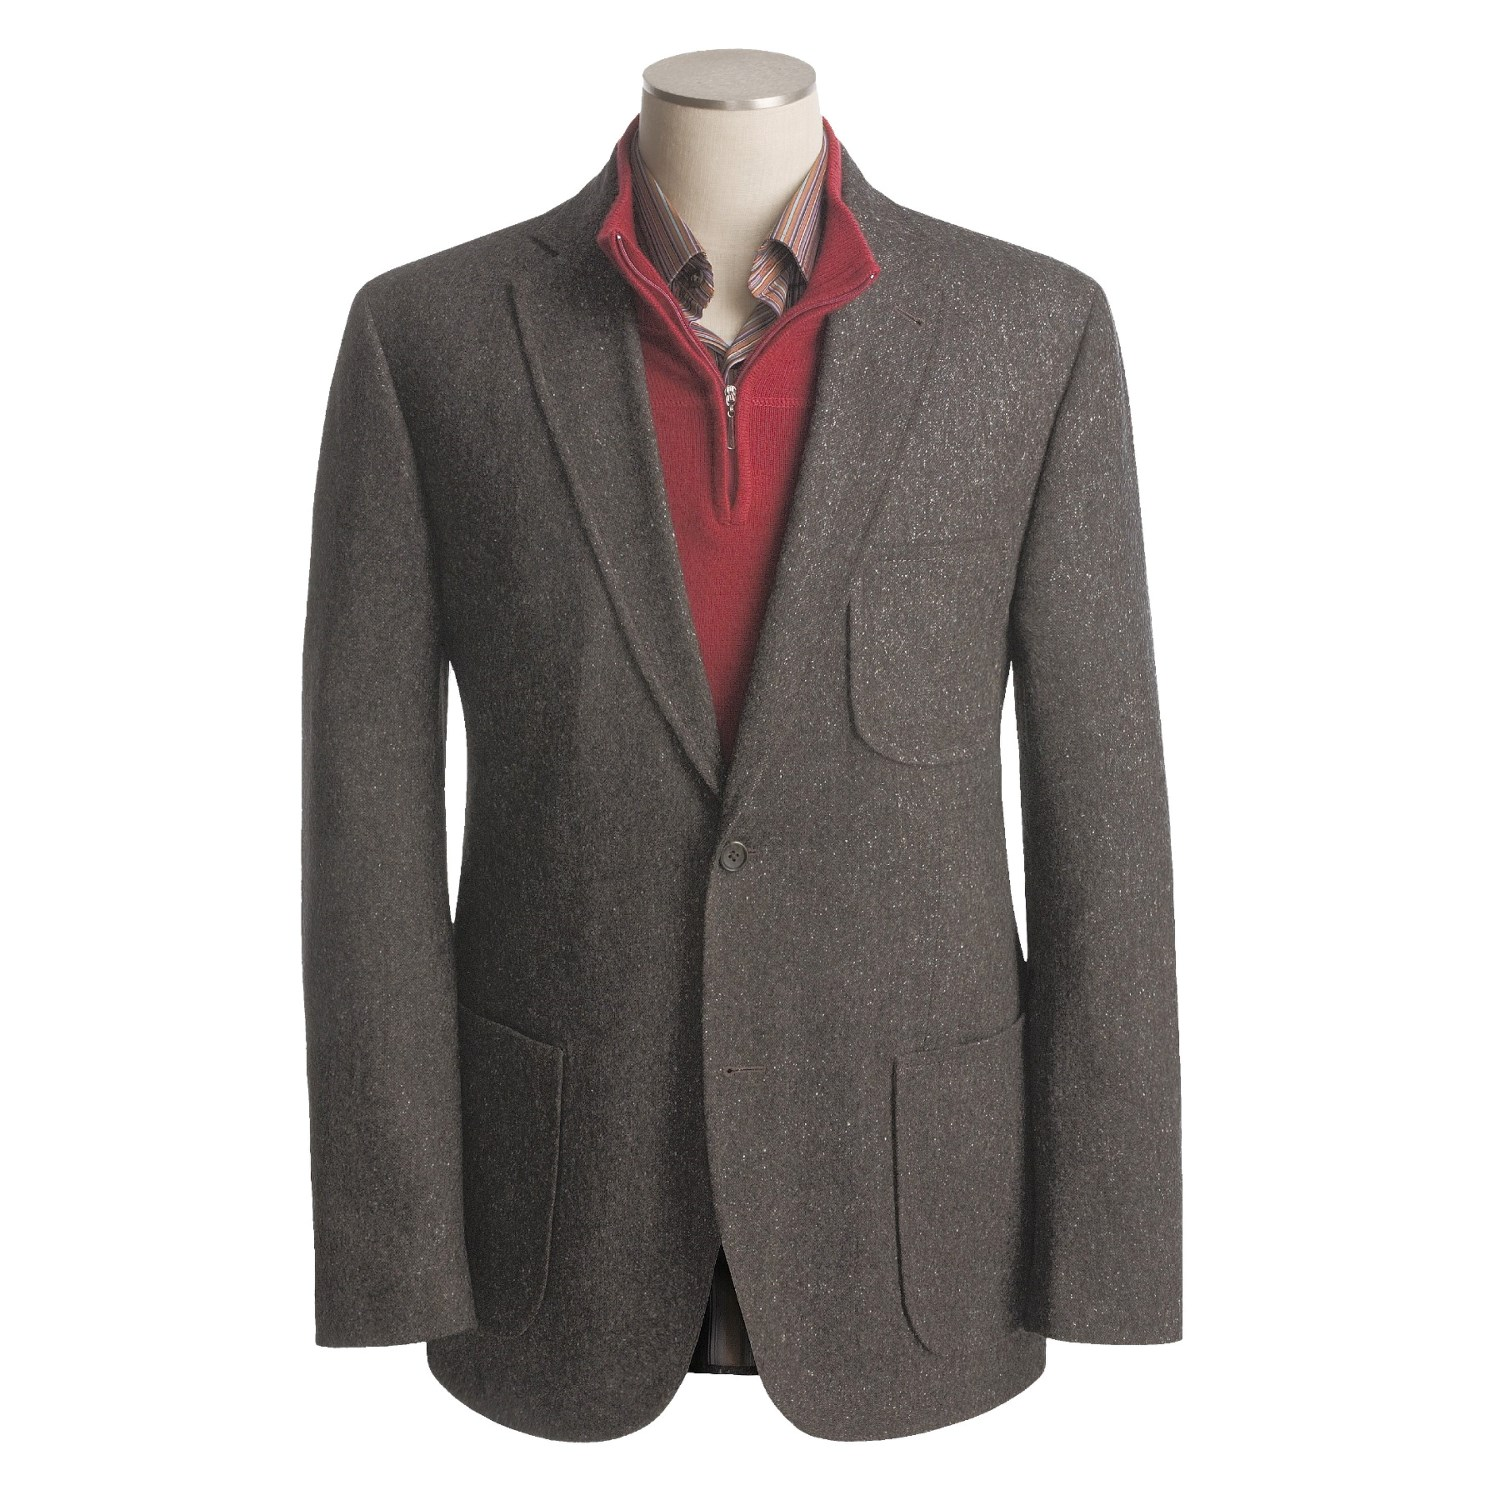 donegal men Donegal tweed the name is derived from the irish county of donegal the fabric is coarse which produces a rustic look,  harris tweed jackets & mens wear.